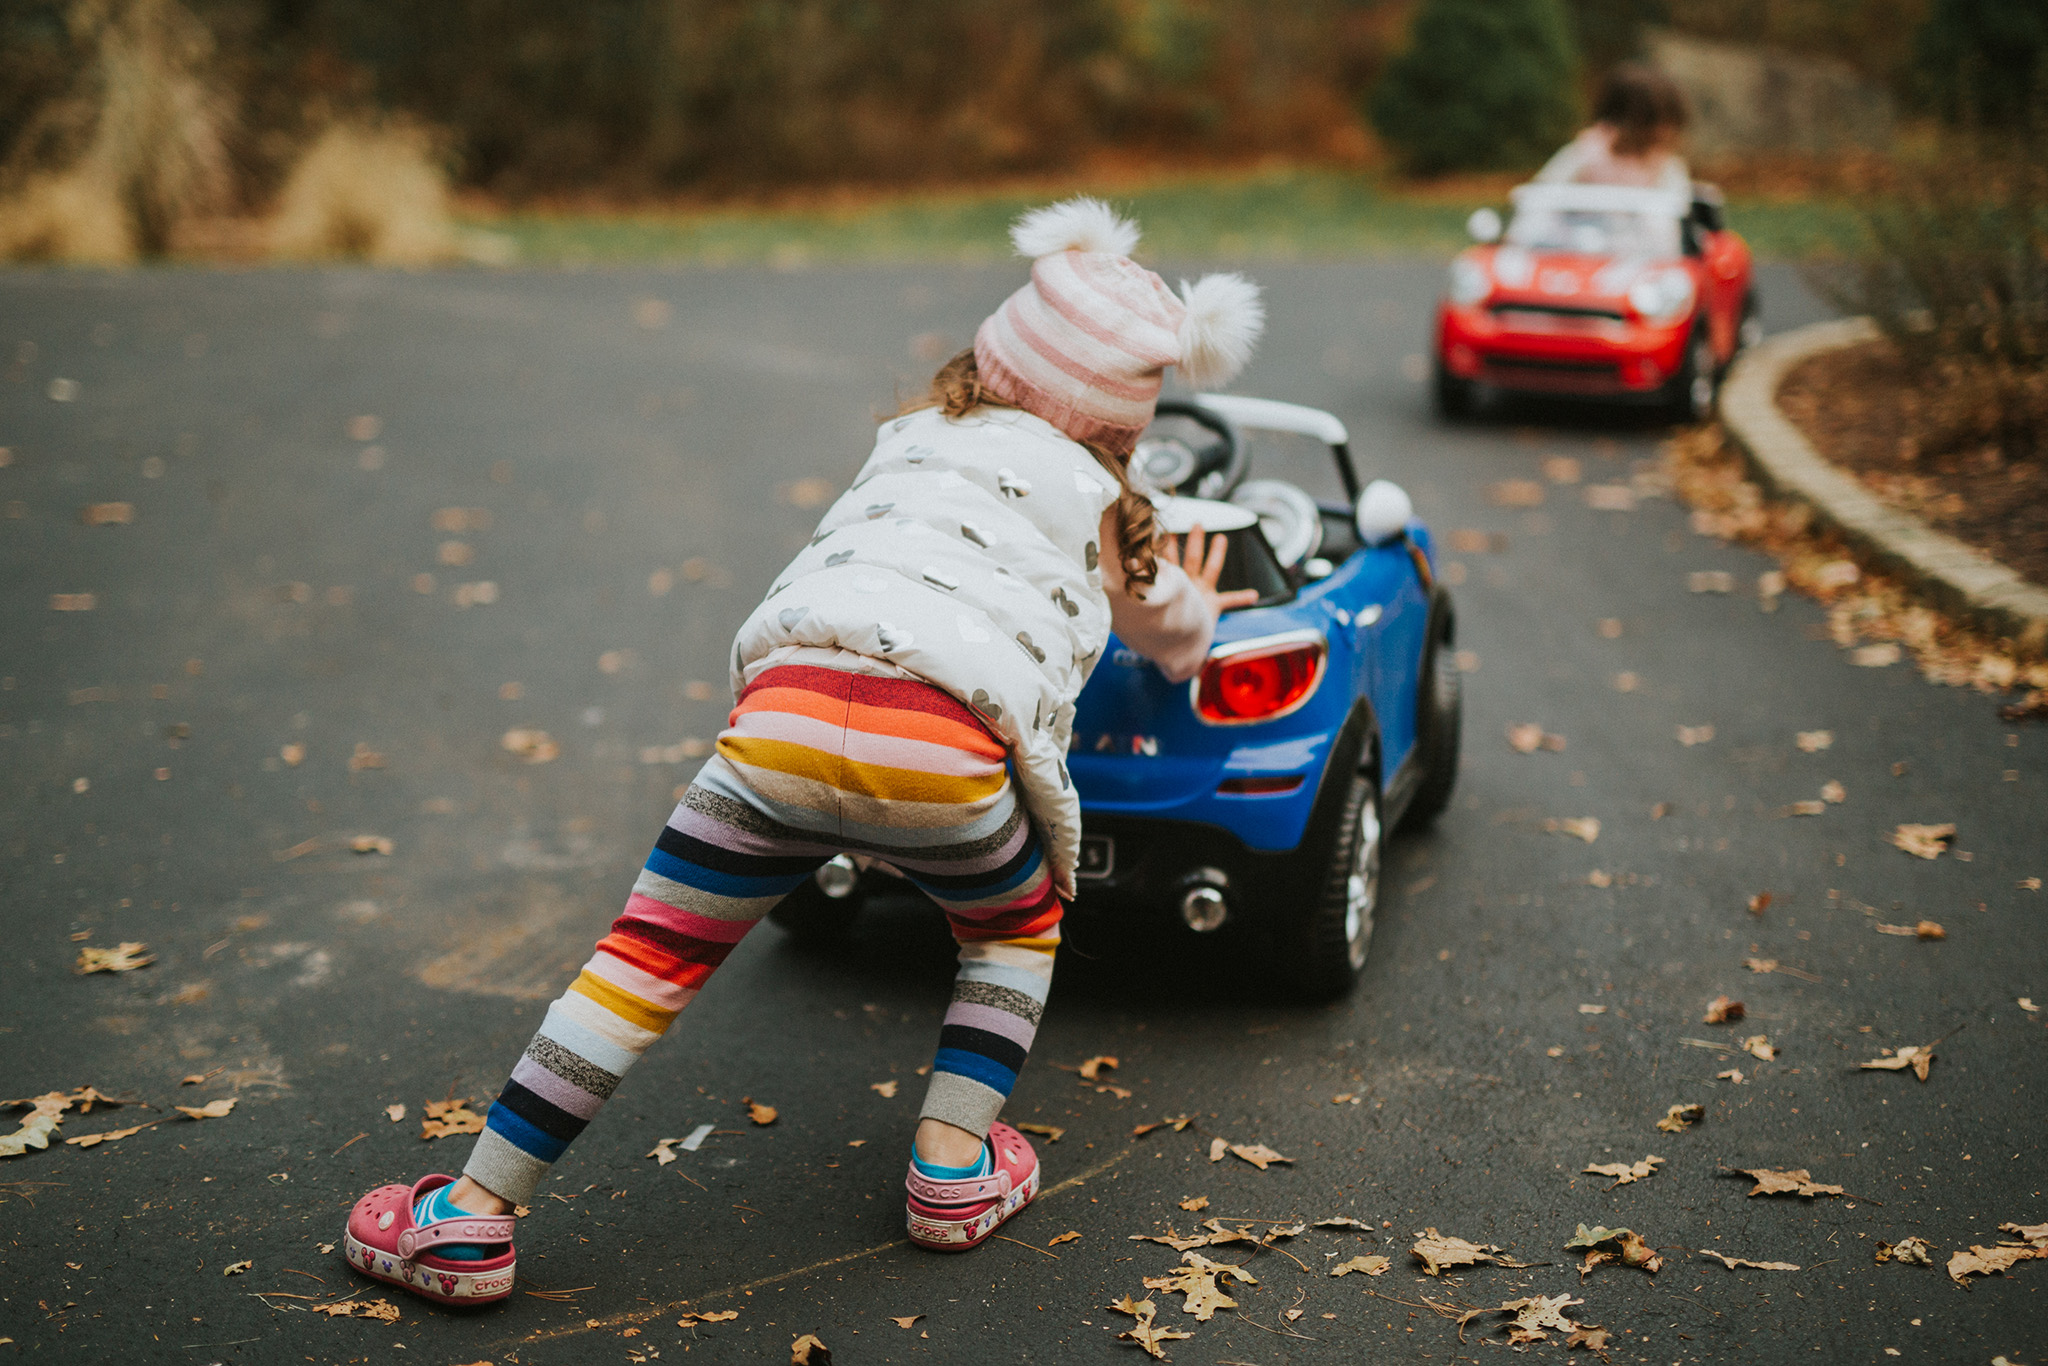 November 25: Let's talk about stripe-y tights and car probz.